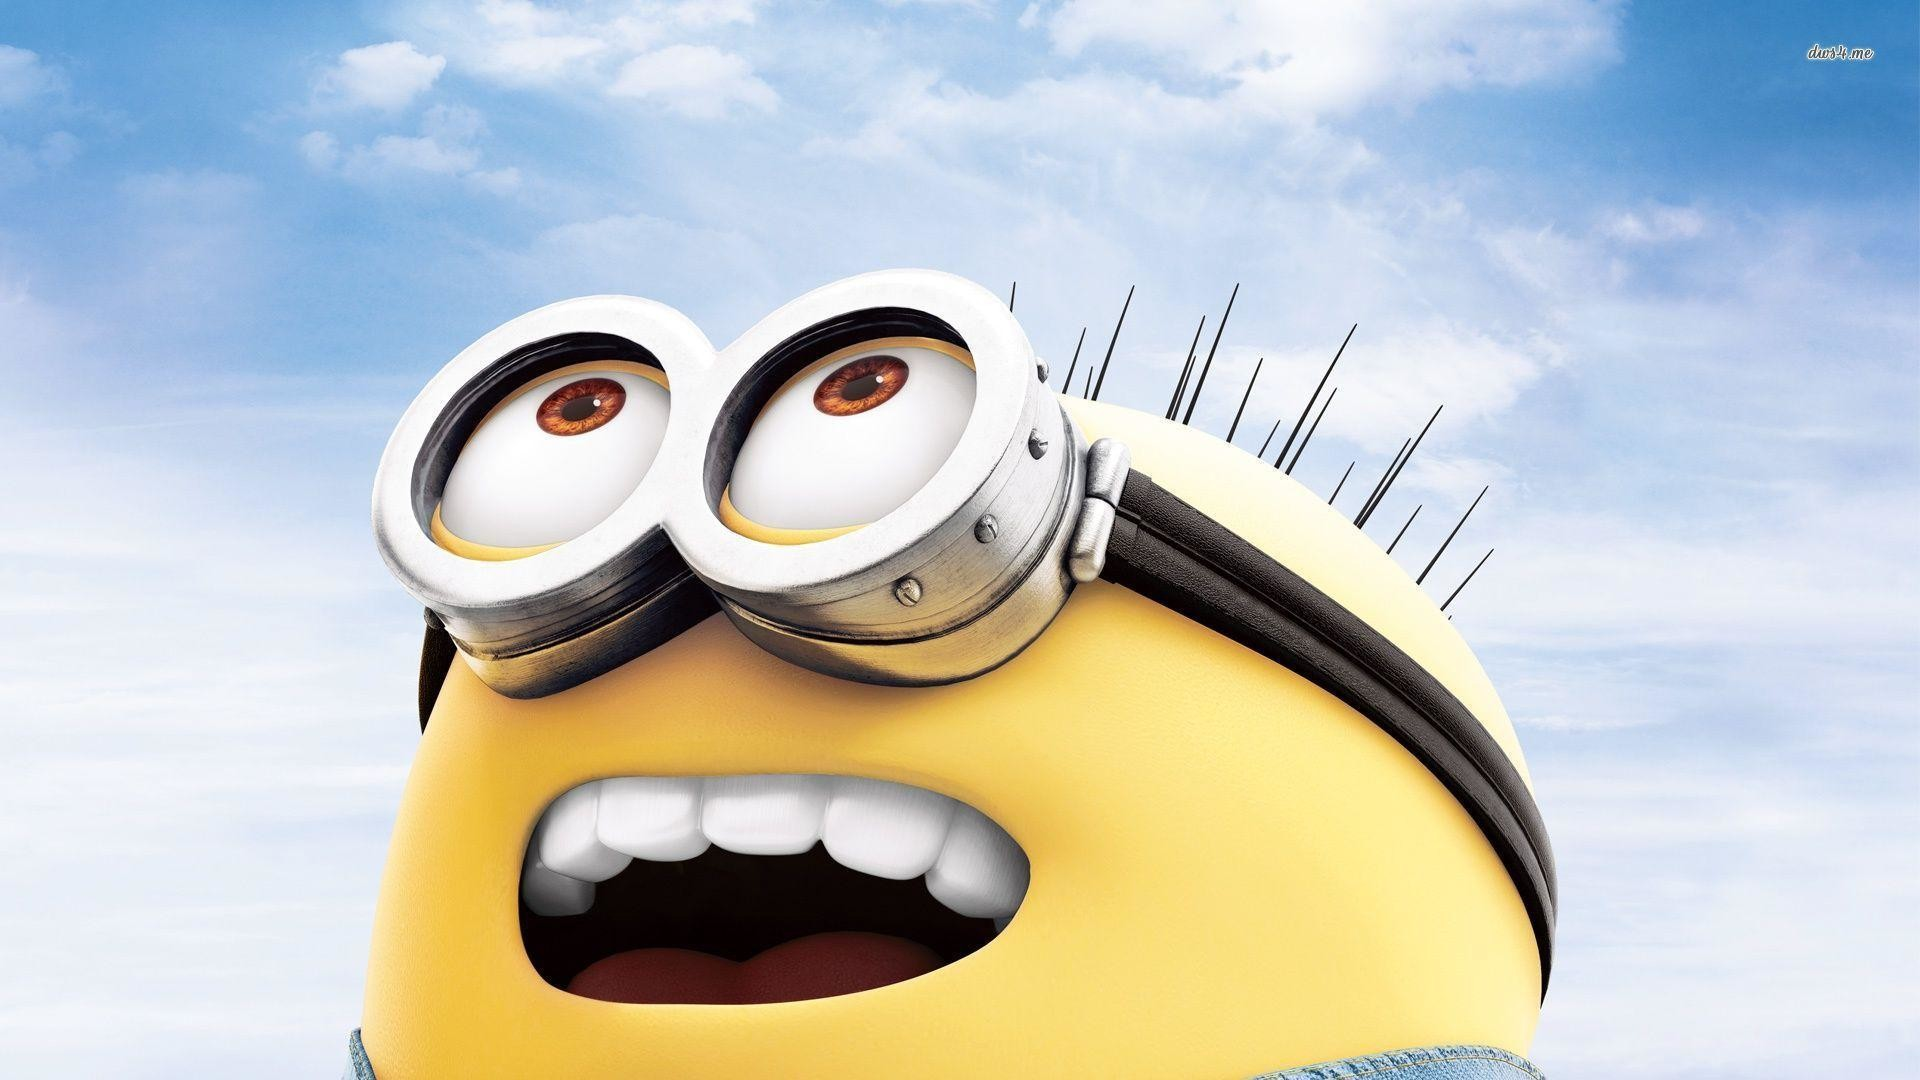 1920x1080 funny minion wallpaper hd image awesome funny minion wallpaper hd .